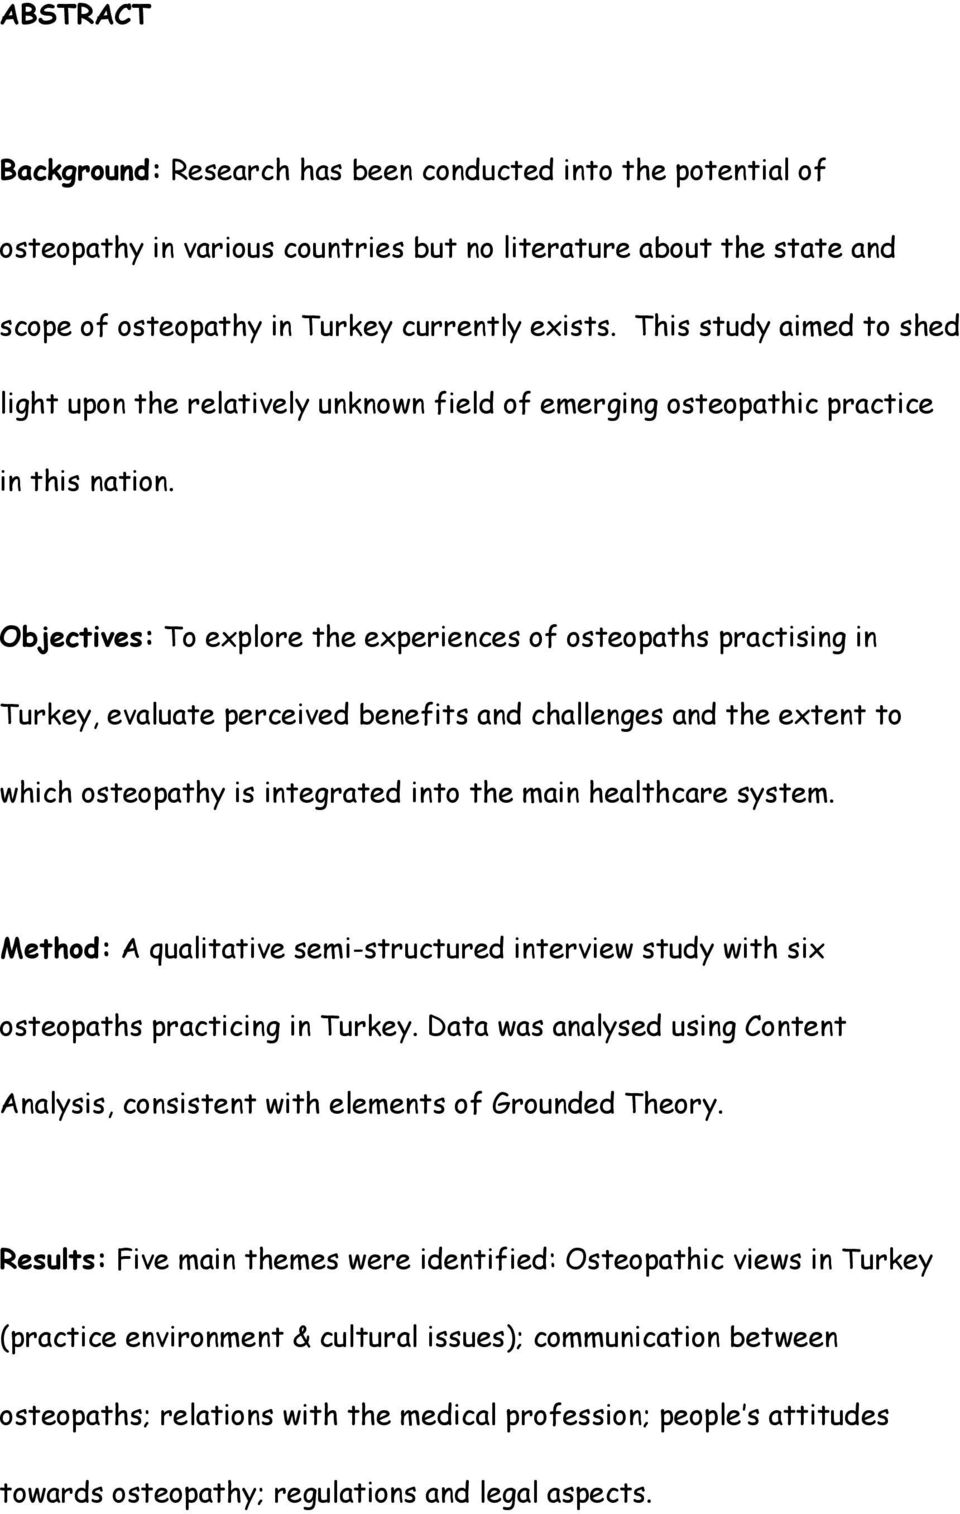 Objectives: To explore the experiences of osteopaths practising in Turkey, evaluate perceived benefits and challenges and the extent to which osteopathy is integrated into the main healthcare system.